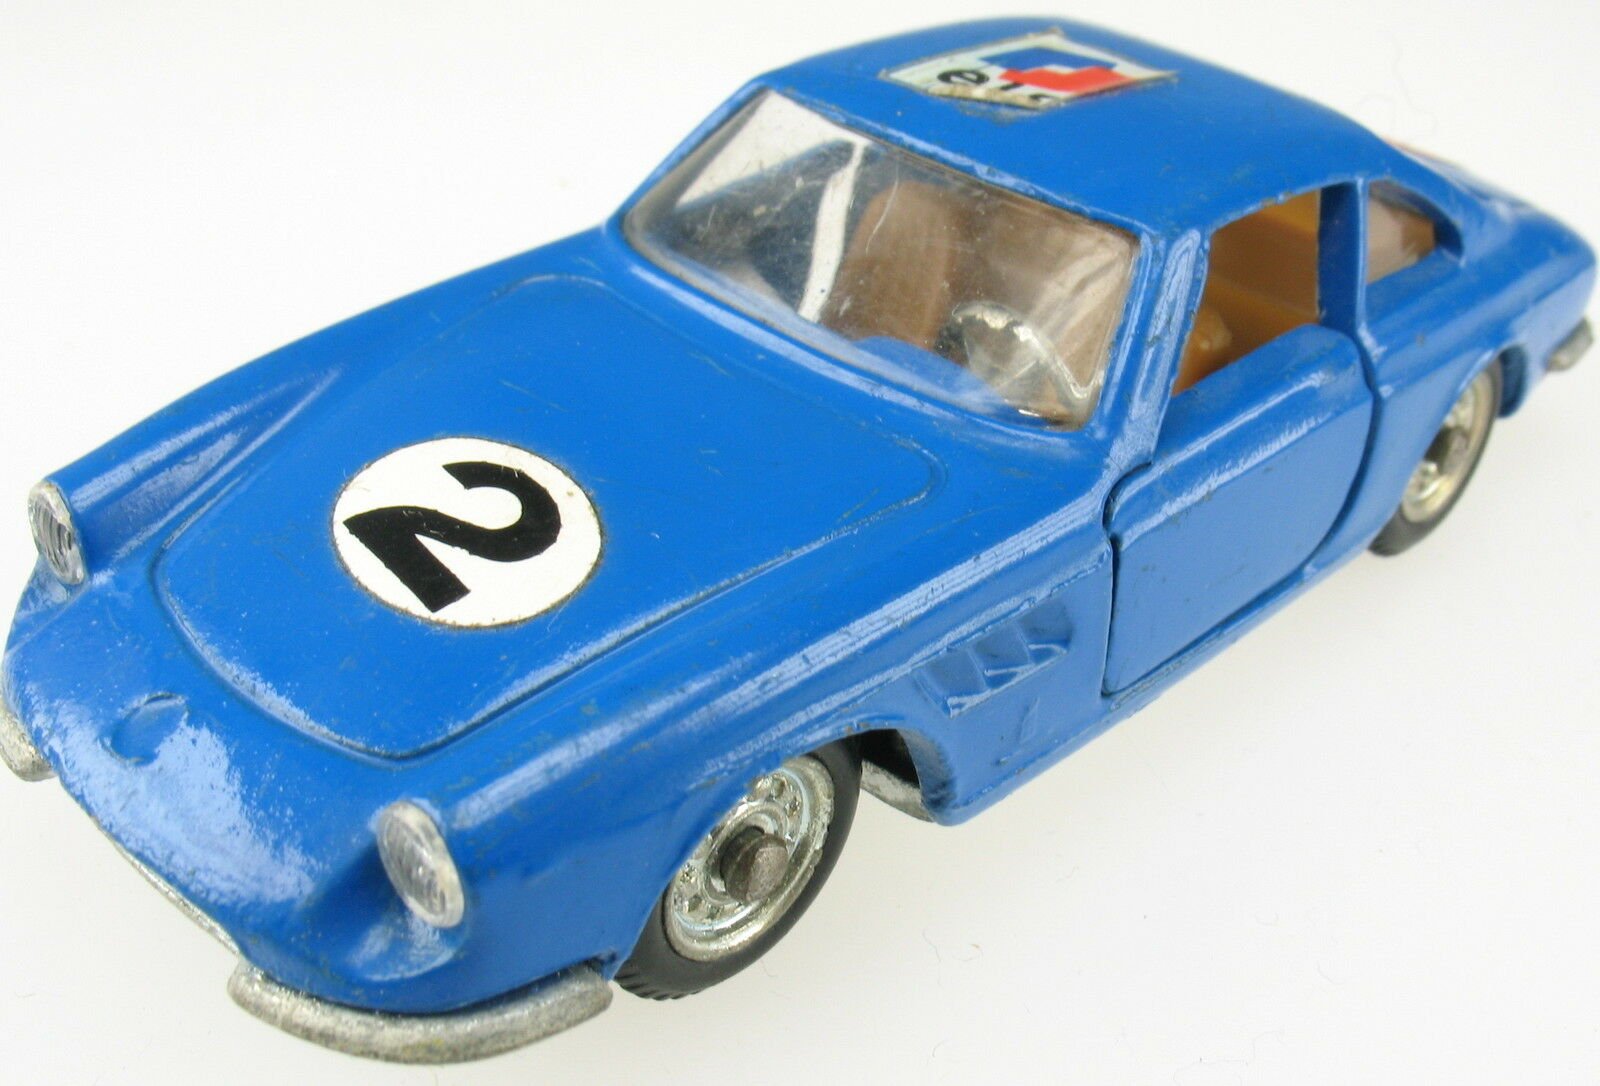 POLITOYS EXPORT 562-FERRARI 330 GTC-BLU - 1 43 - model car